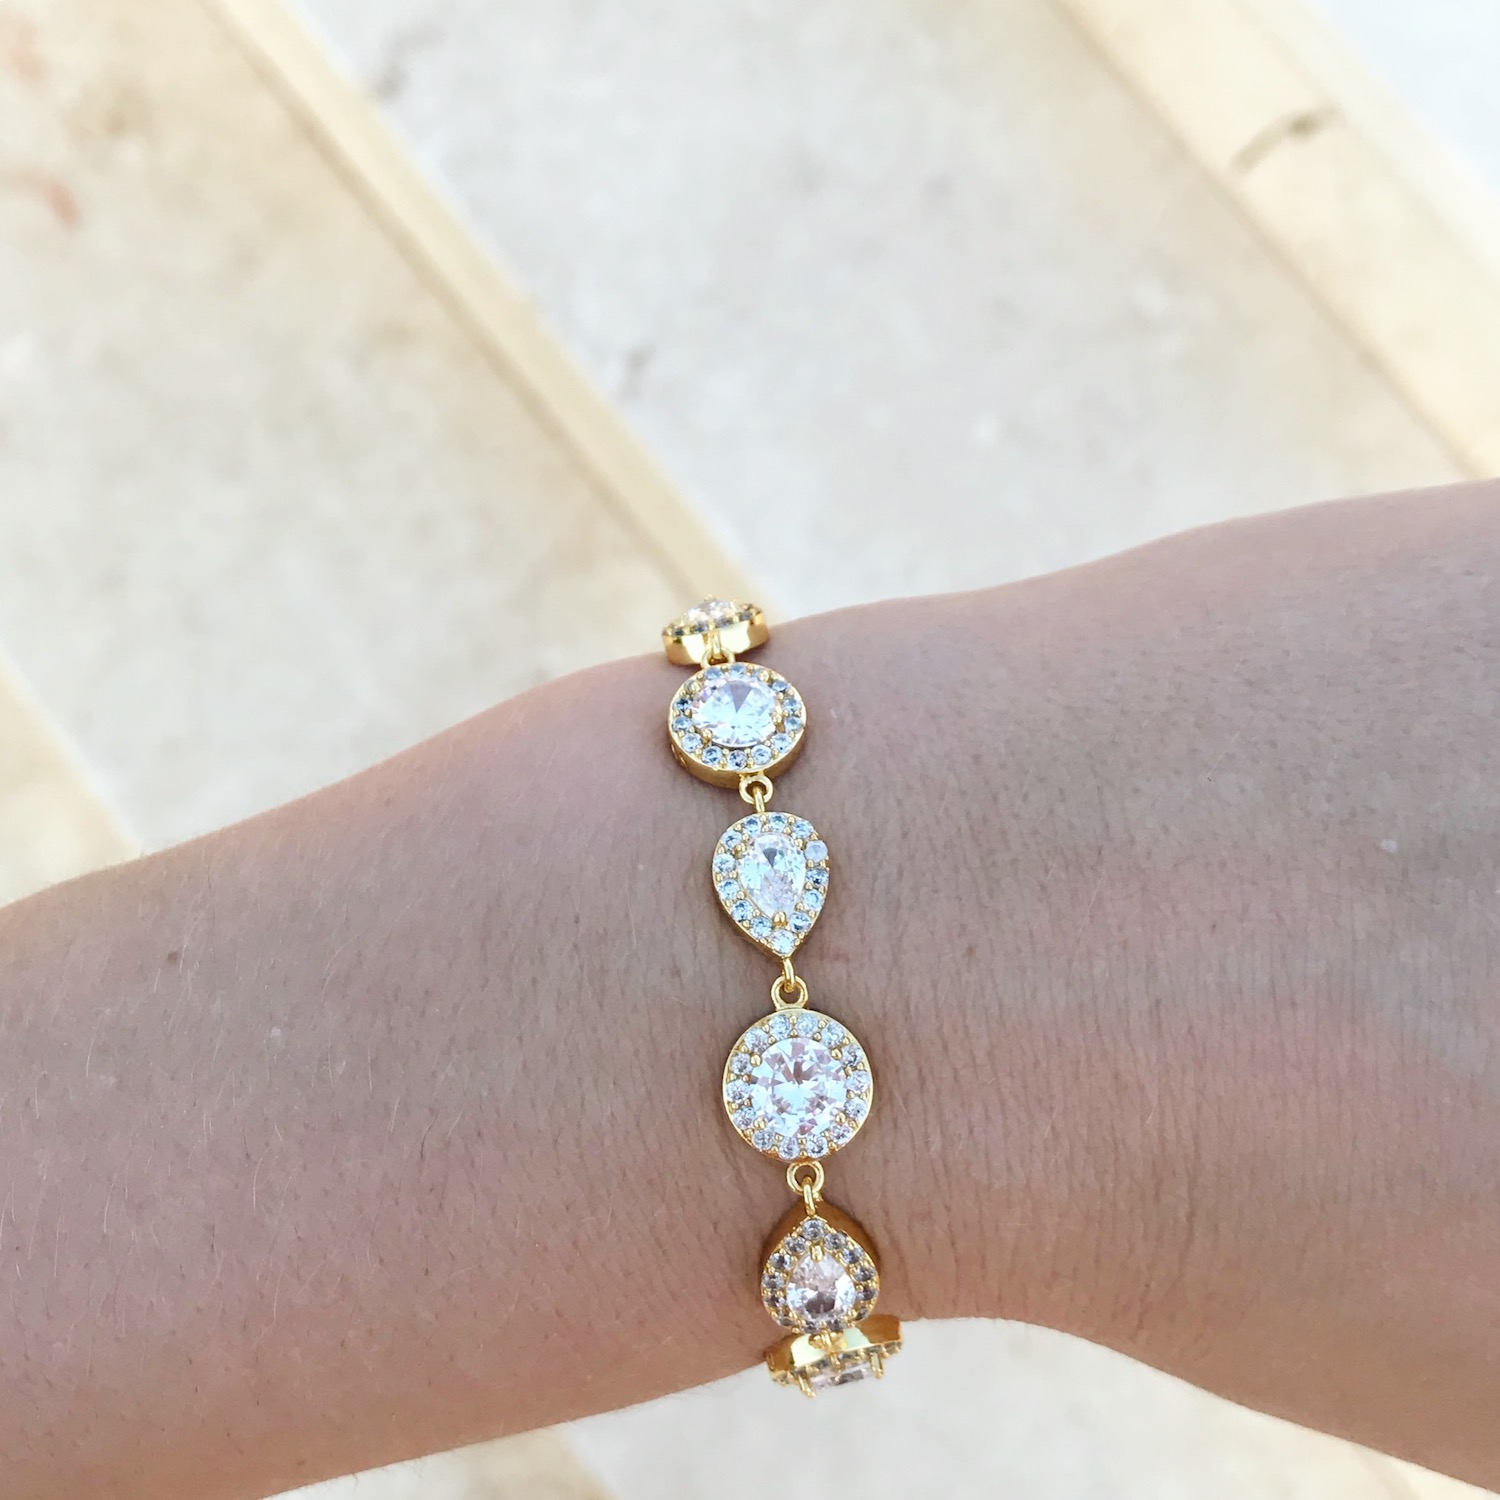 Woman wearing luxurious bracelet in gold with zirconia